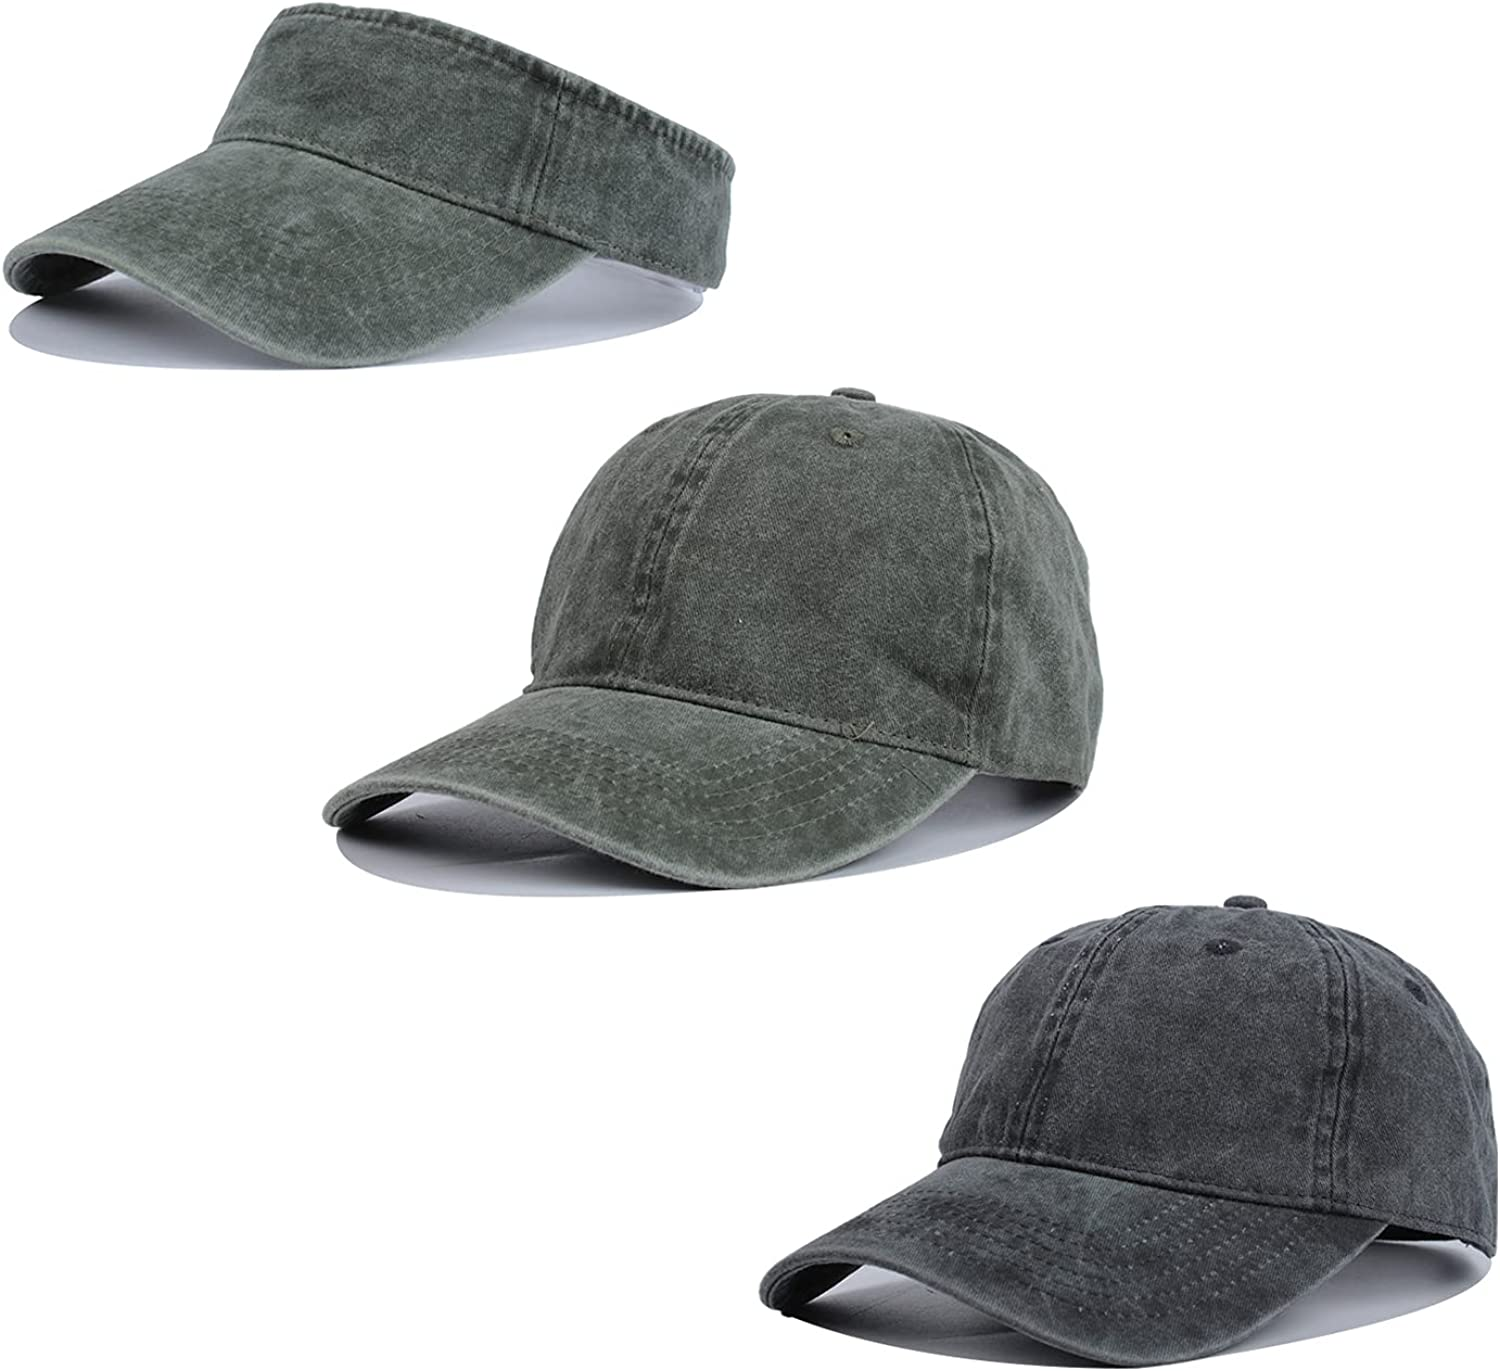 Crazy Era Adjustable Baseball Cap and Sun Visor Hat Washed Cotton Outdoor Sport Plain Dad Hats for Men and Women 3 Pack